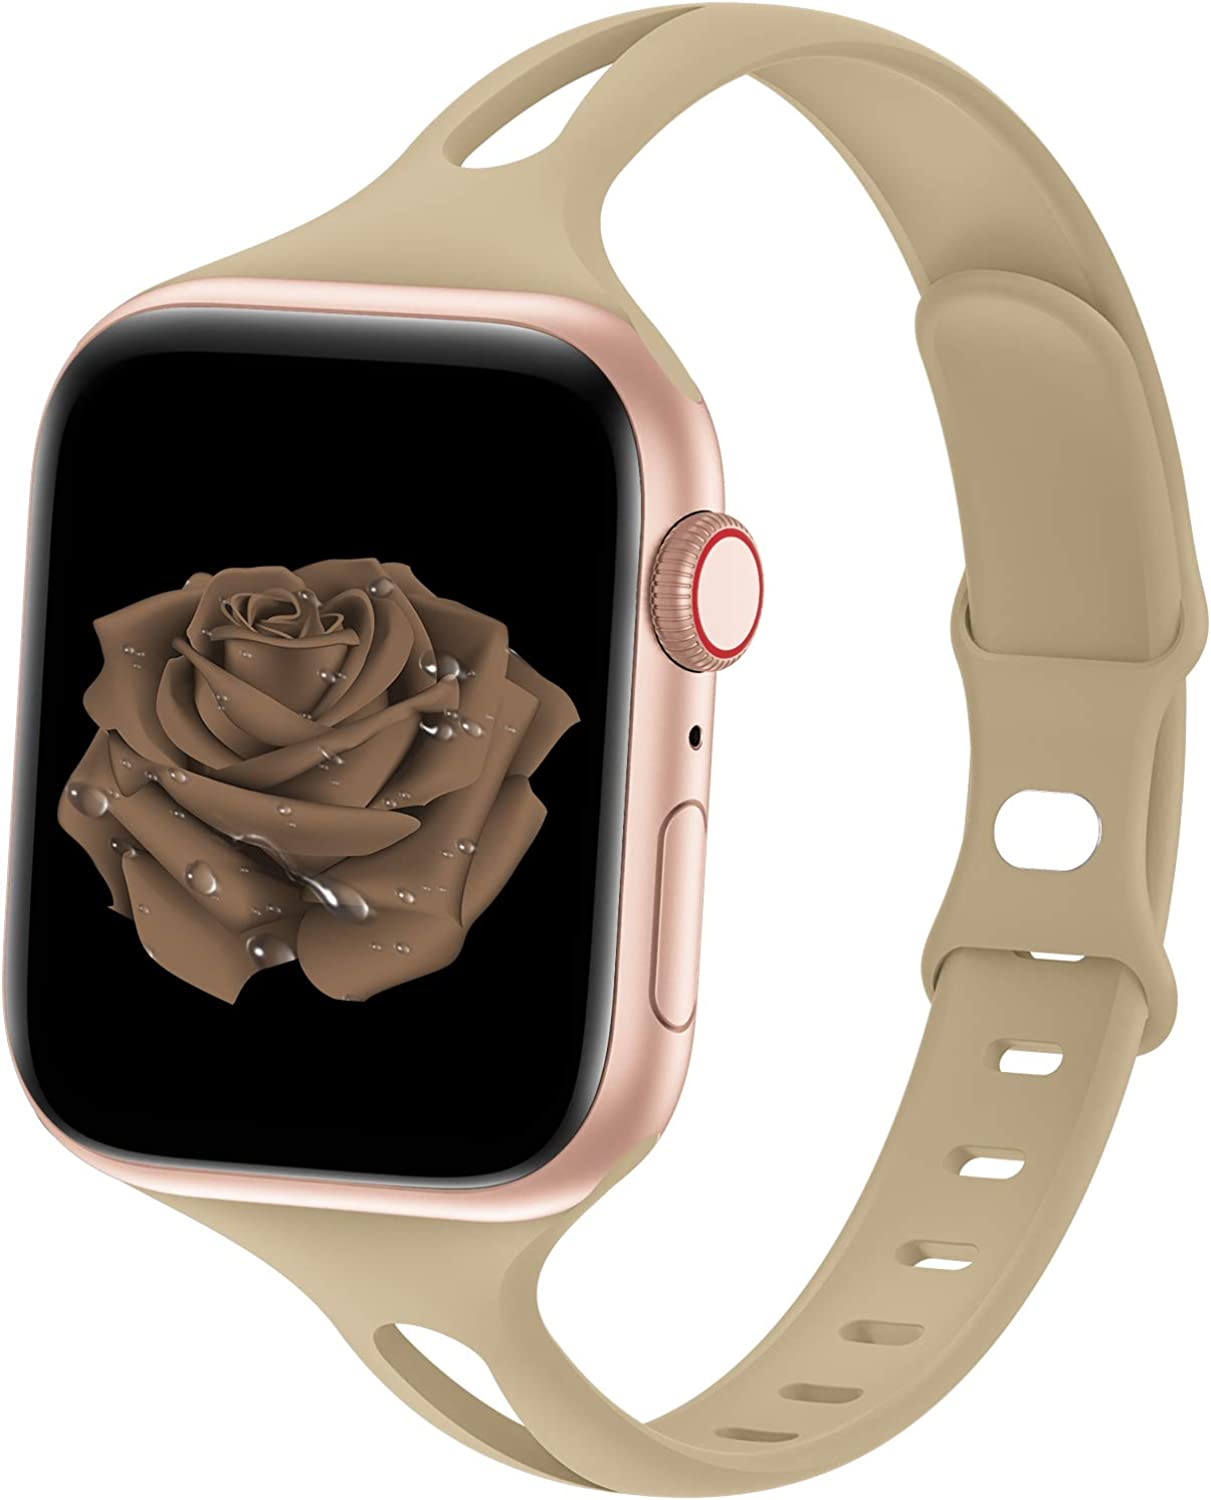 Bagoplus Compatible with Apple Watch Bands 42mm 44mm, Breathable Soft Silicone iWatch Bands 42mm 44mm Women Men Compatible with iWatch Series 6/5/4/3/2/1/SE